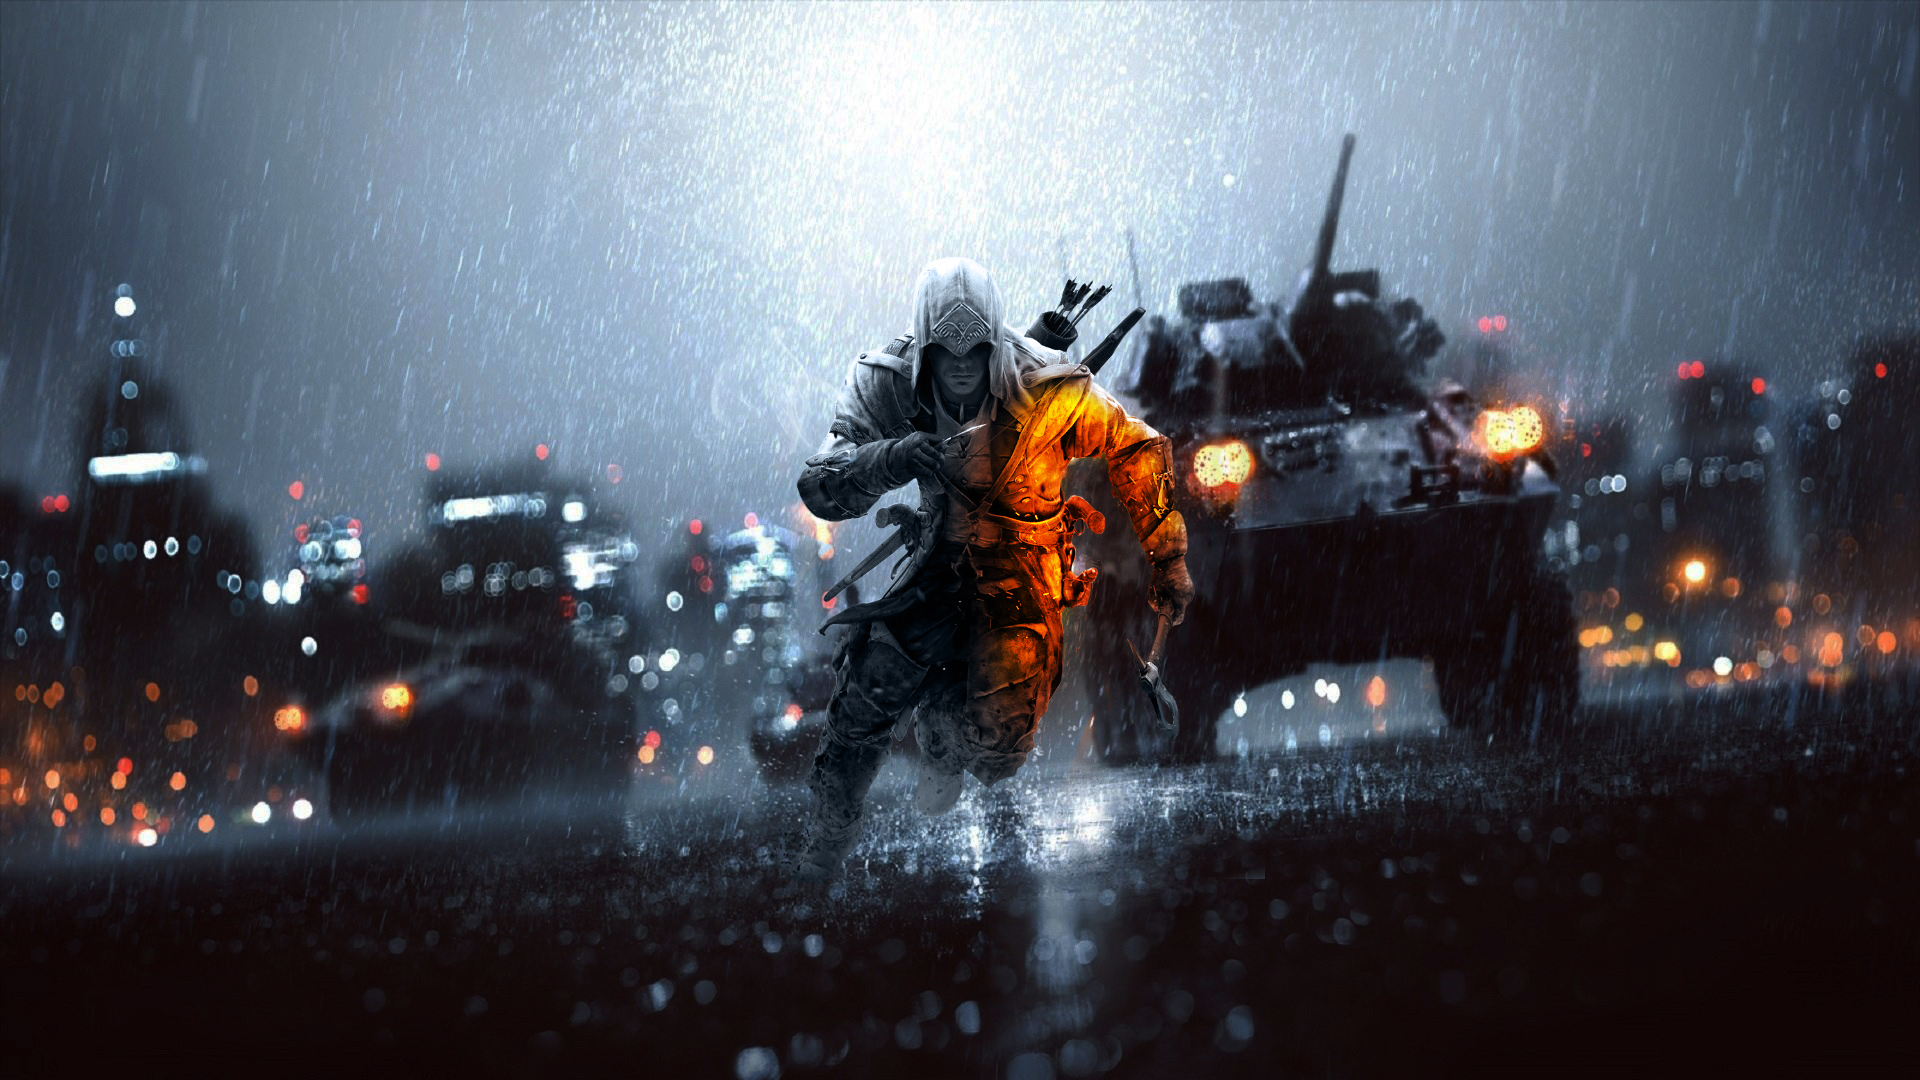 Ac and bf4 transfusion by soumyabratapaul15 on deviantart - Bf4 wallpaper ...